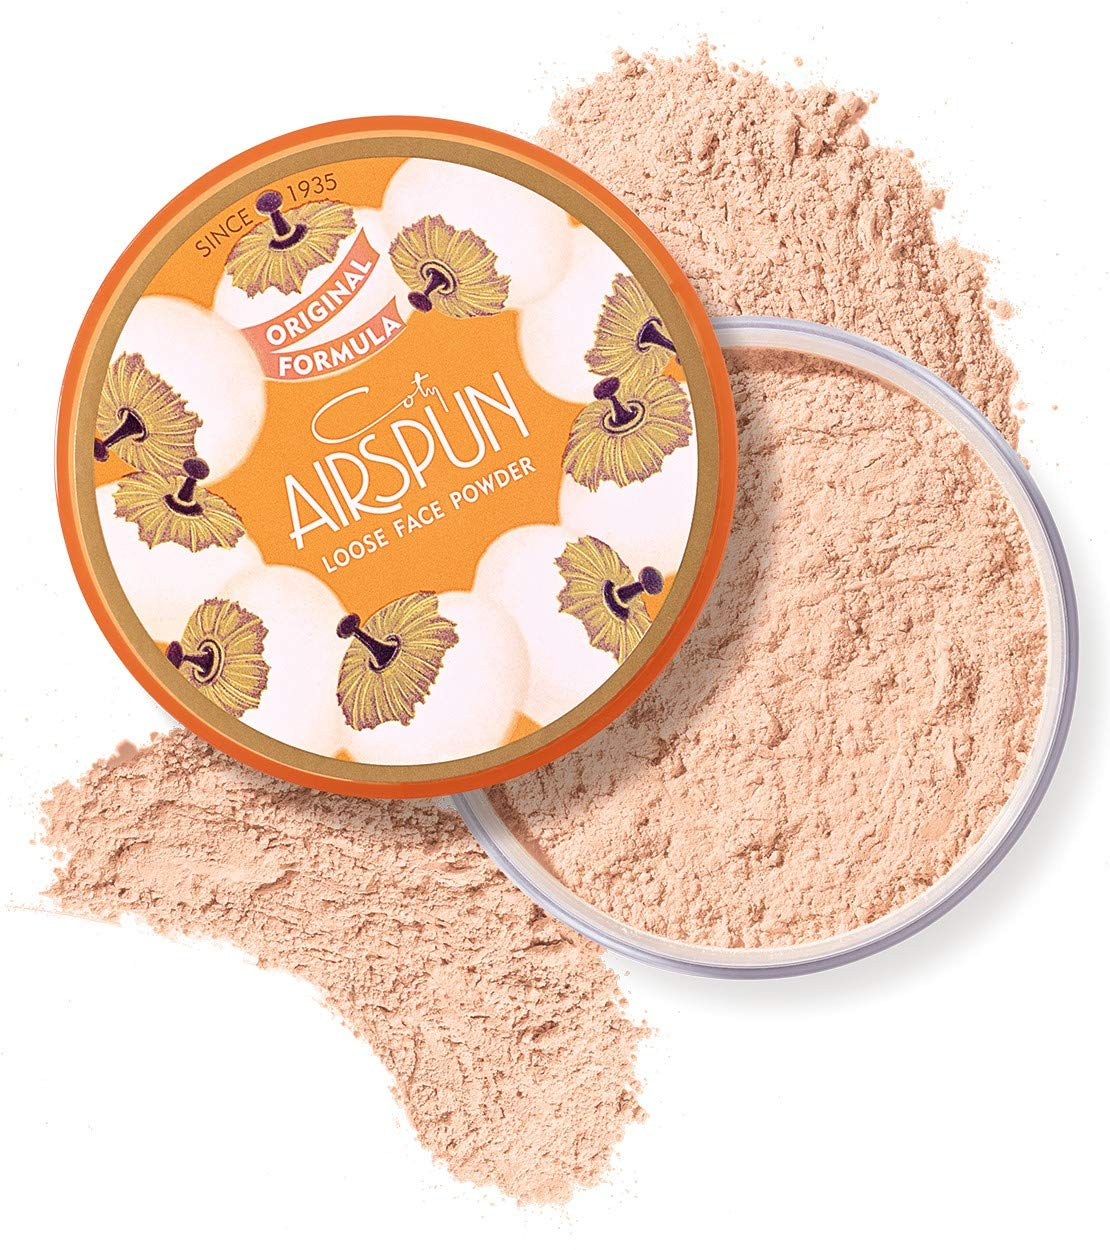 Coty Airspun 38807032000 Loose Face Powder 2.3 oz. Honey Beige Light Peach Tone Loose Face Powder, for Setting or Foundation, Lightweight, Long Lasting, Pack of 1